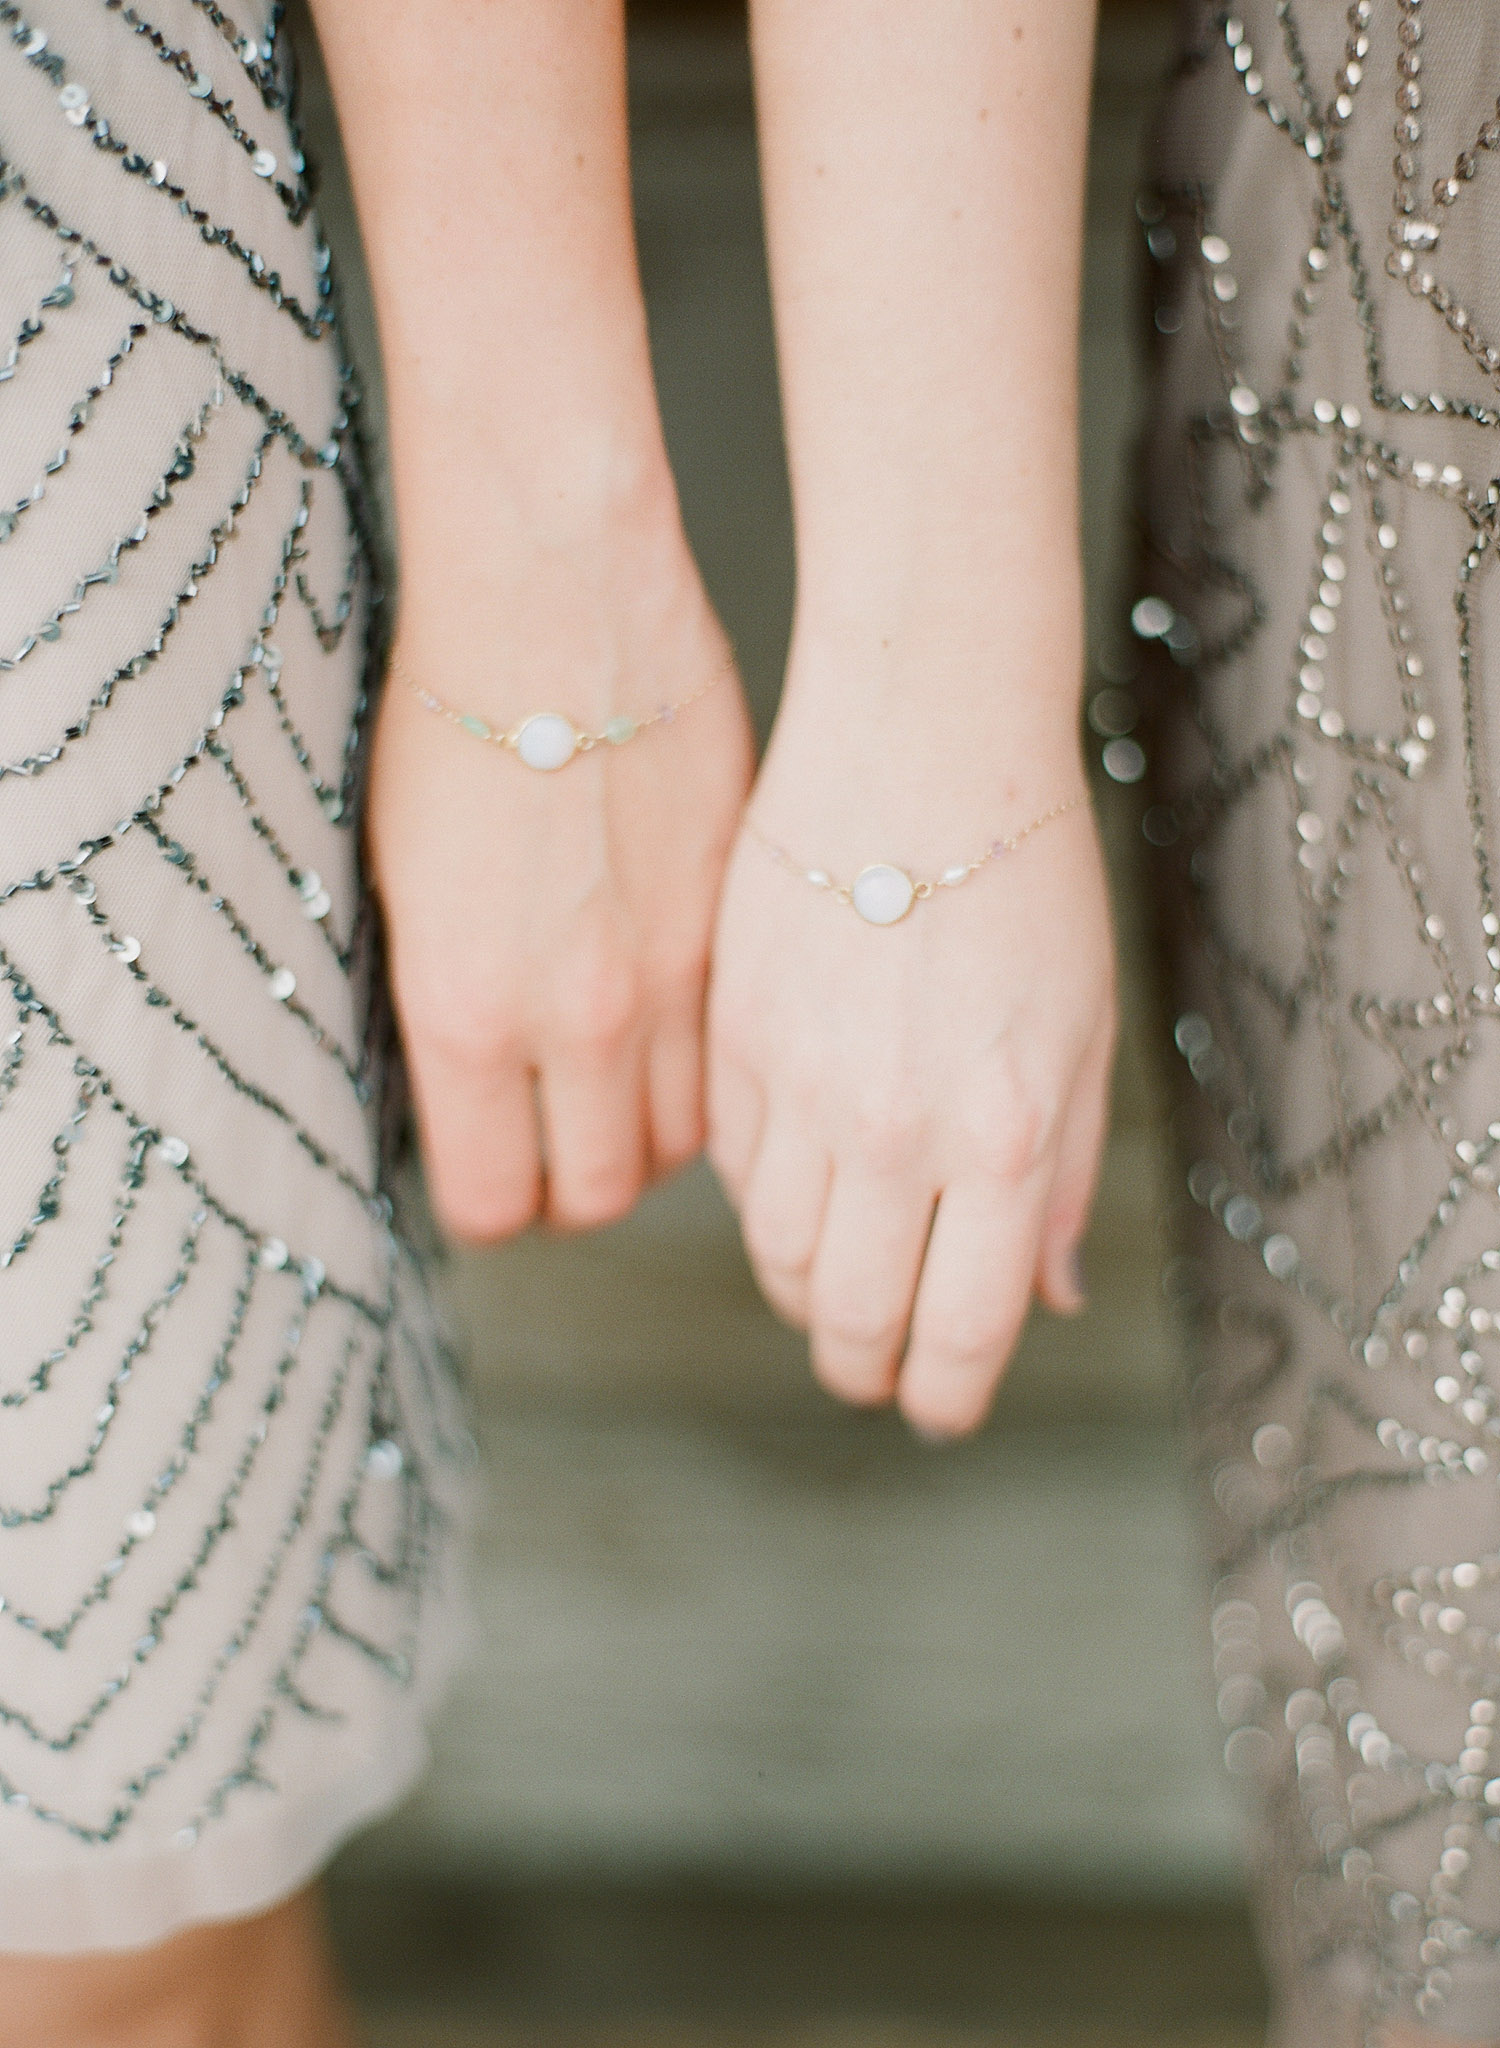 bride gave her bridesmaids gifts of bracelets for her springtime wedding at Northwind Perennial Gardens in wisconsin while Destination wedding photographer lexia frank photographs her wedding in film